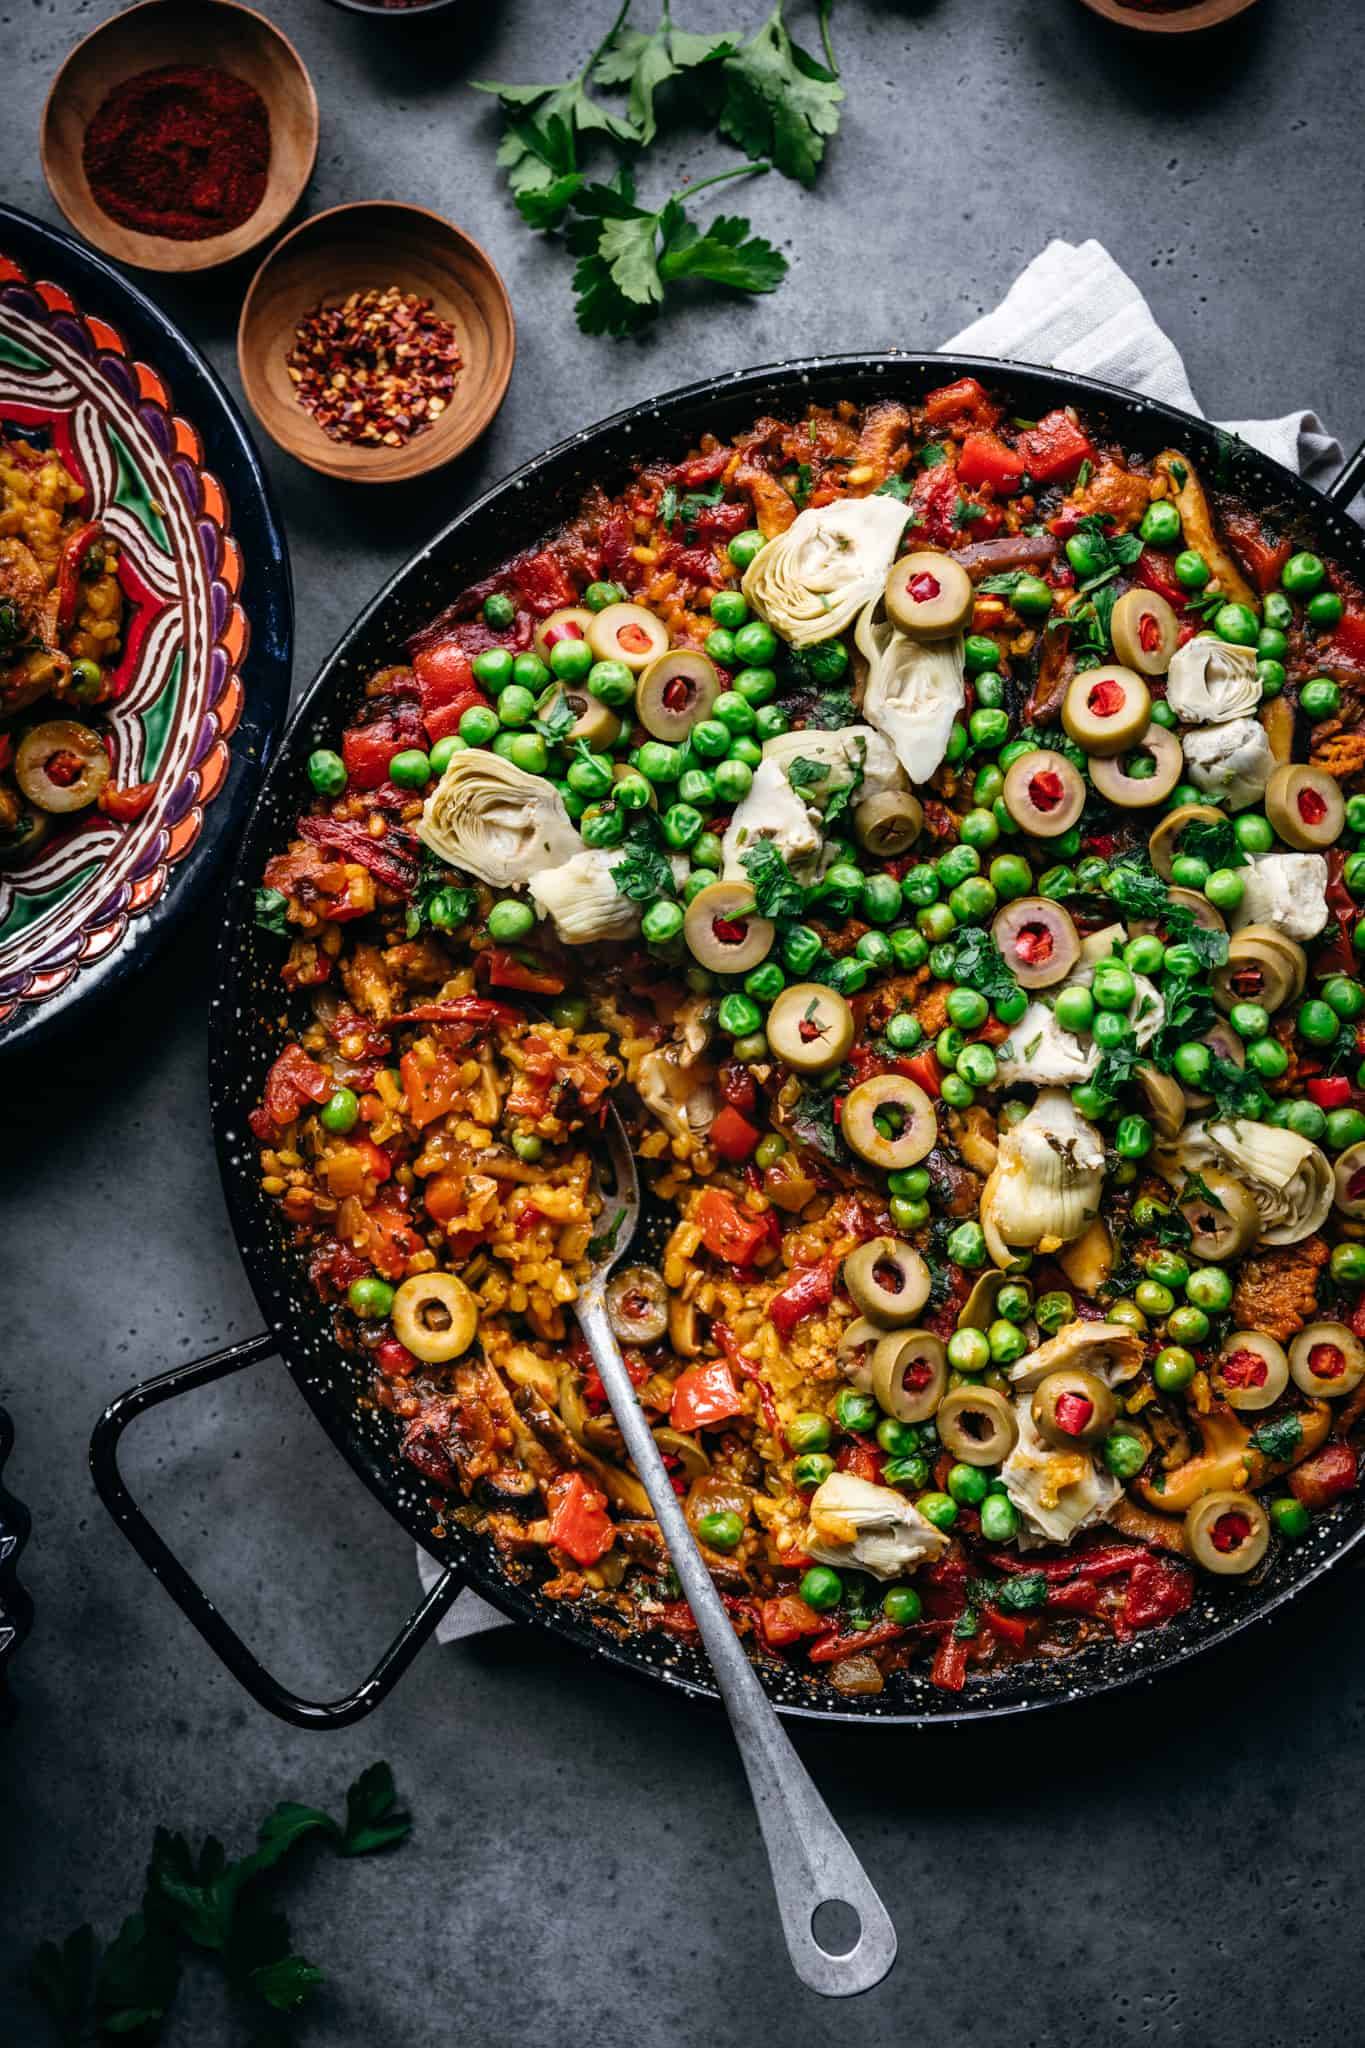 overhead view of vegan paella with peas, vegan chorizo, artichokes and olives